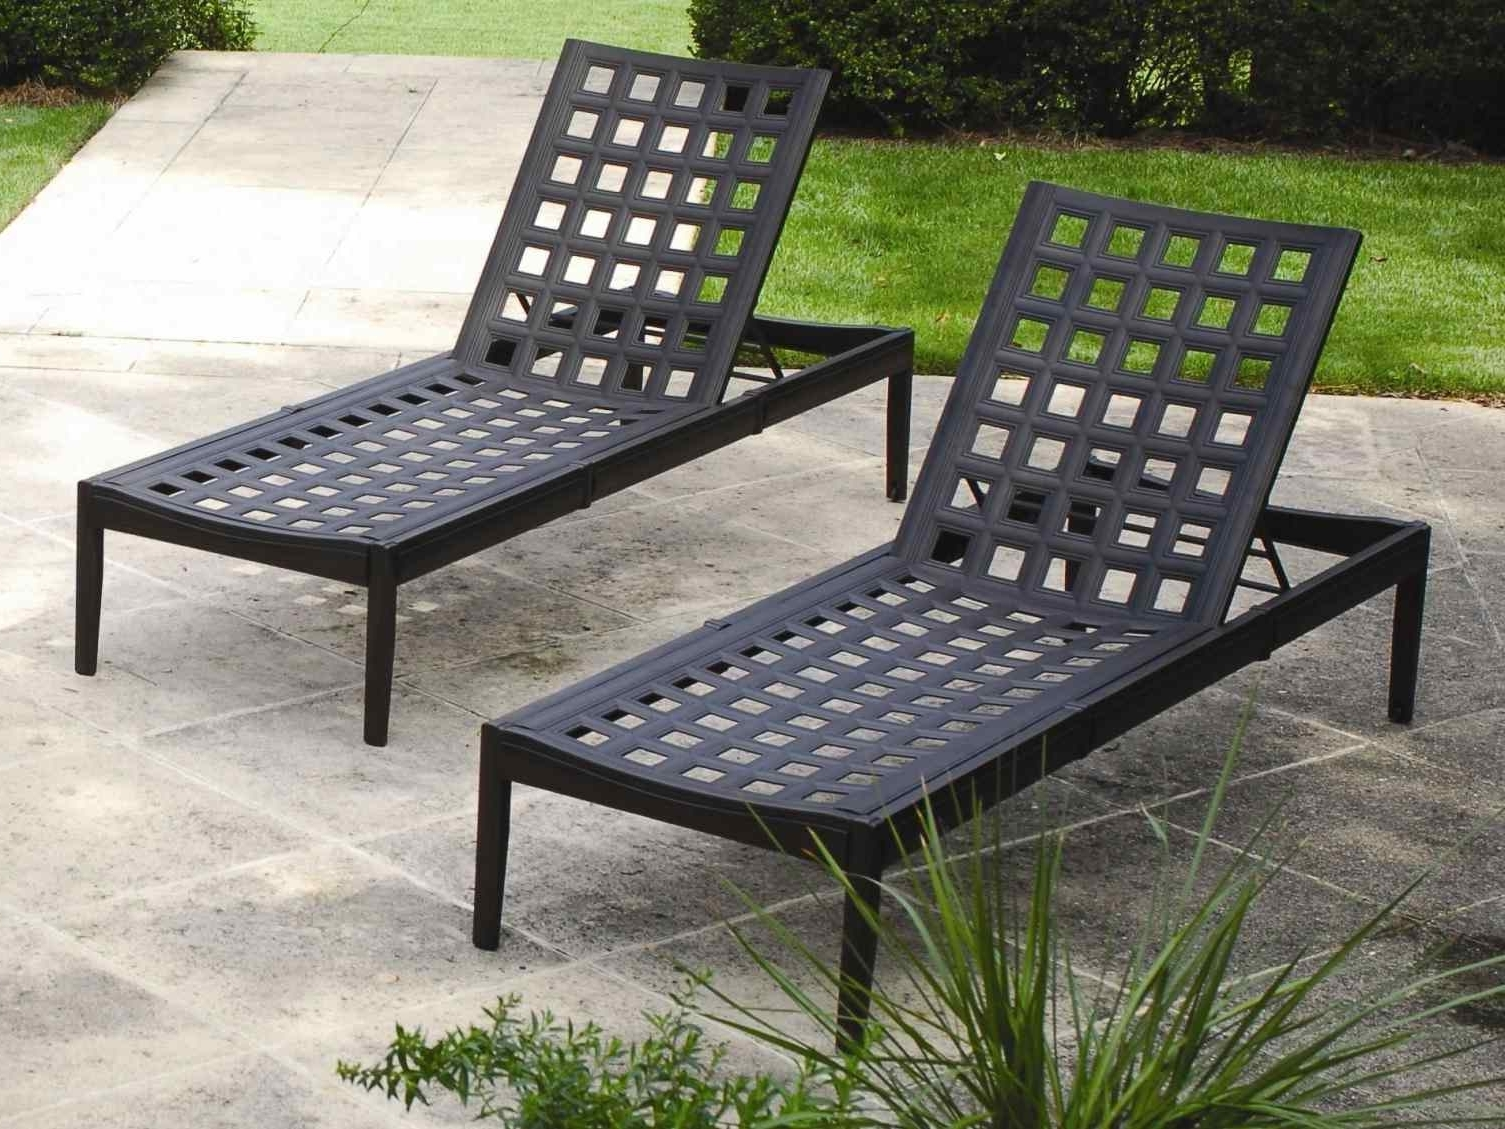 Lounge Chair : Lounge Pool Chairs Walmart S Home Decorating Chair Throughout Well Known Sears Chaise Lounges (View 3 of 15)